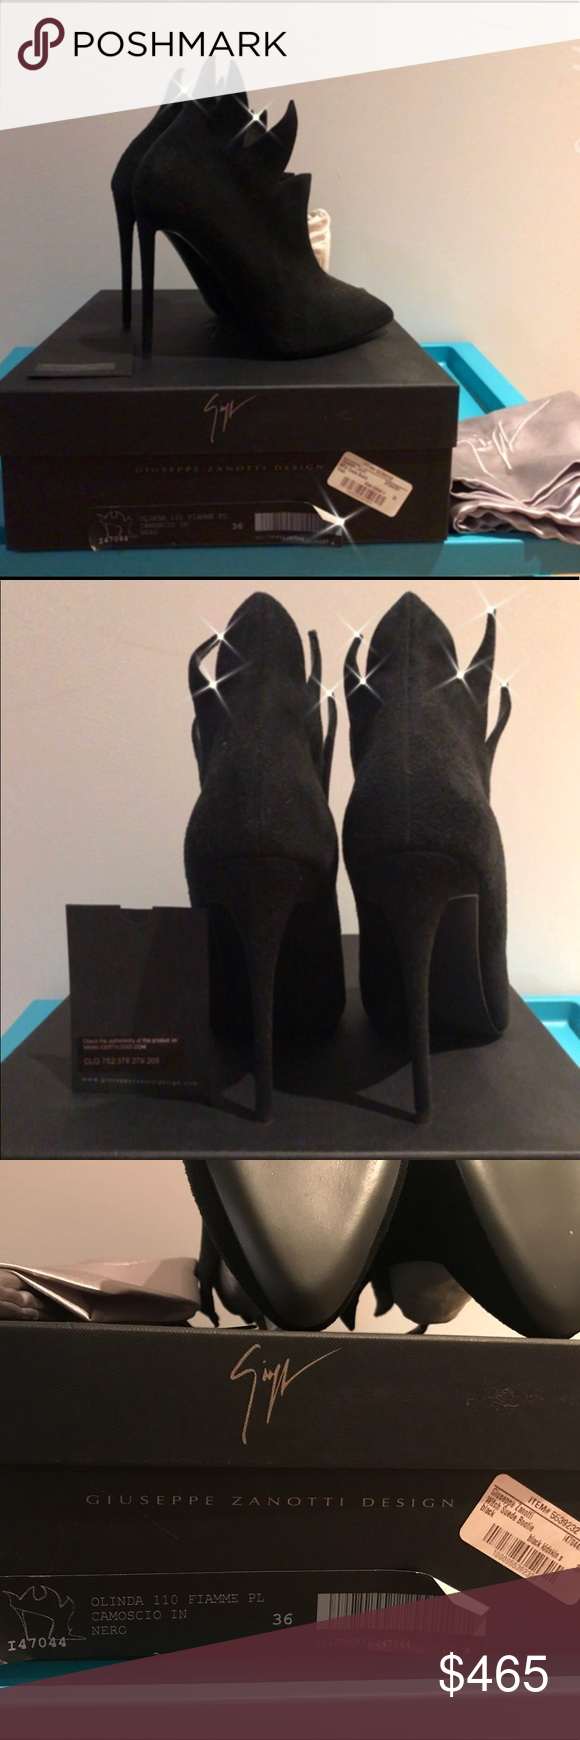 c86ac7c84be Authentic Giuseppe zanotti witch suede boogie NWT